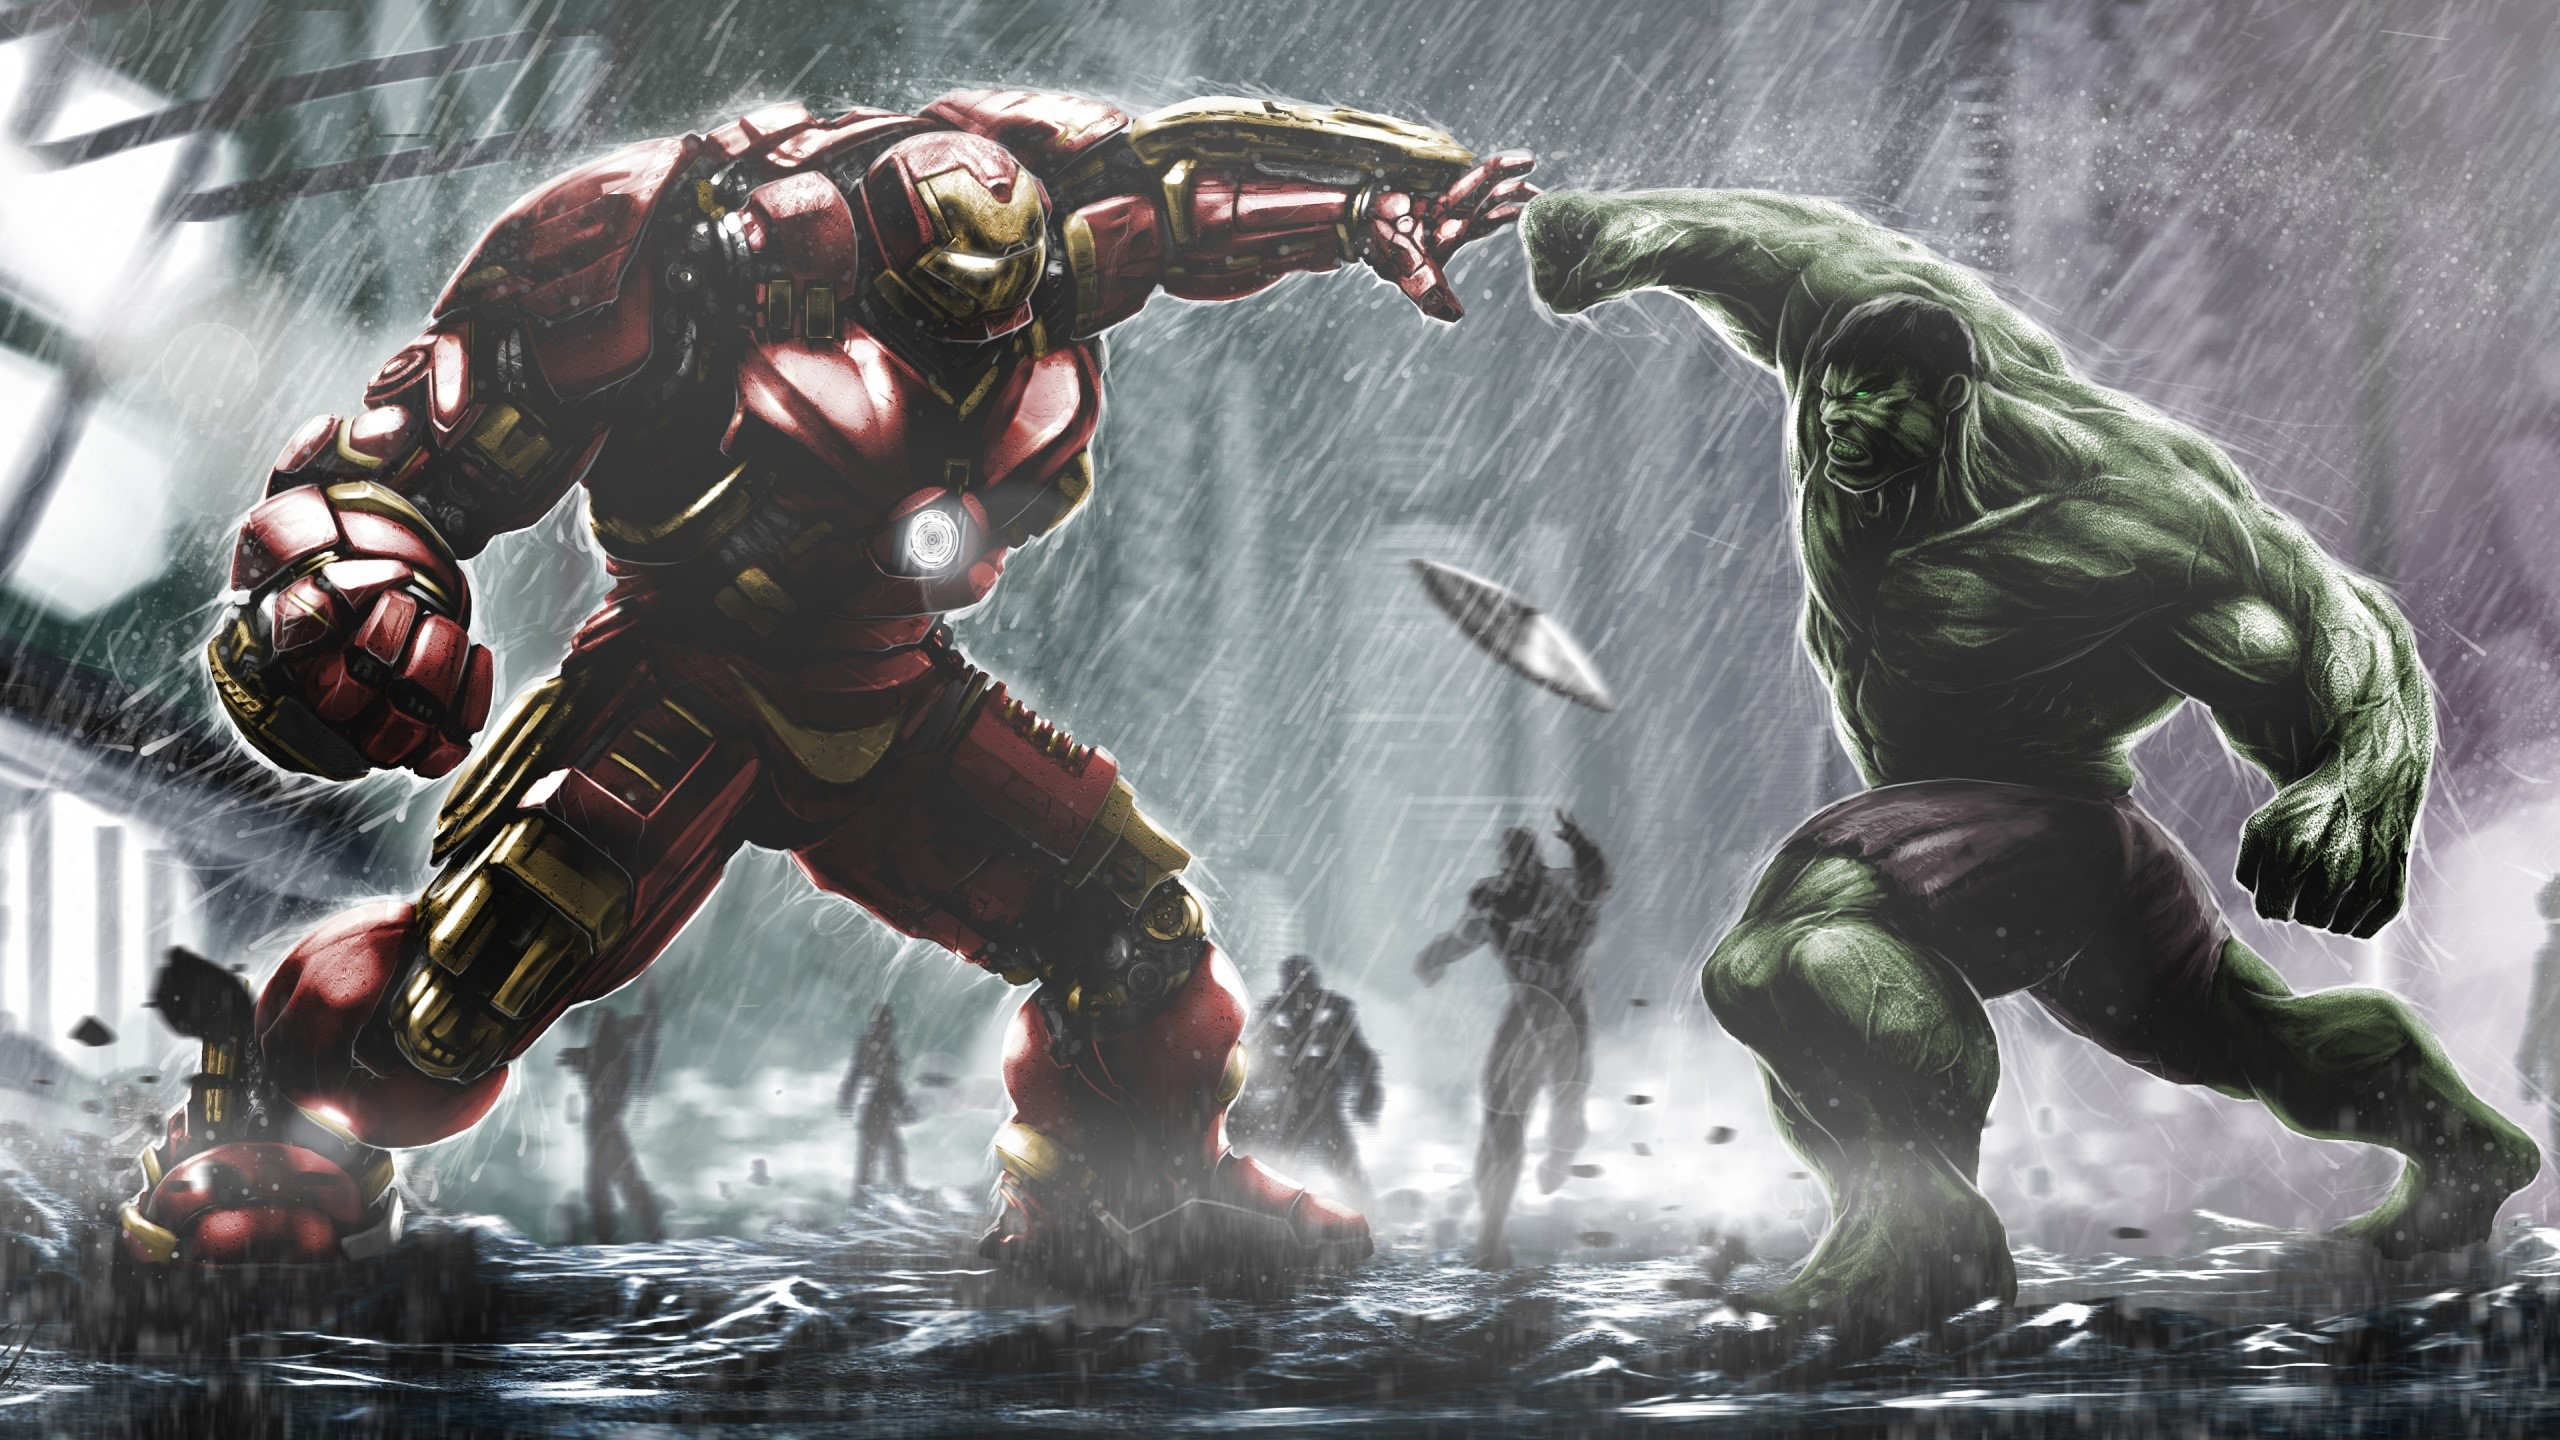 Wallpaper Hulkbuster Ironman vs. Hulk